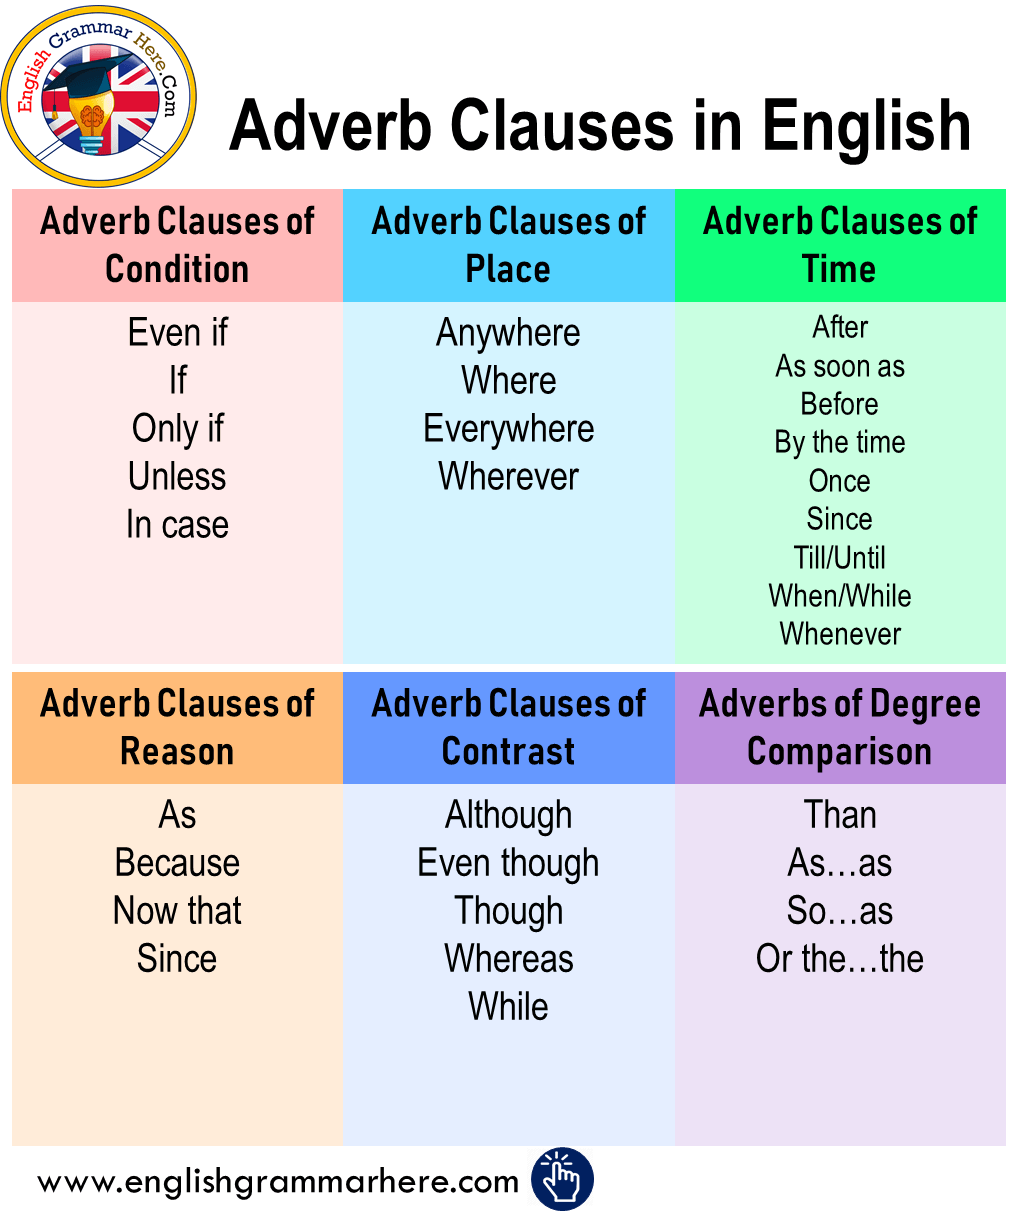 Adverb Clauses In English English Grammar English Vocabulary Words Learn English Words